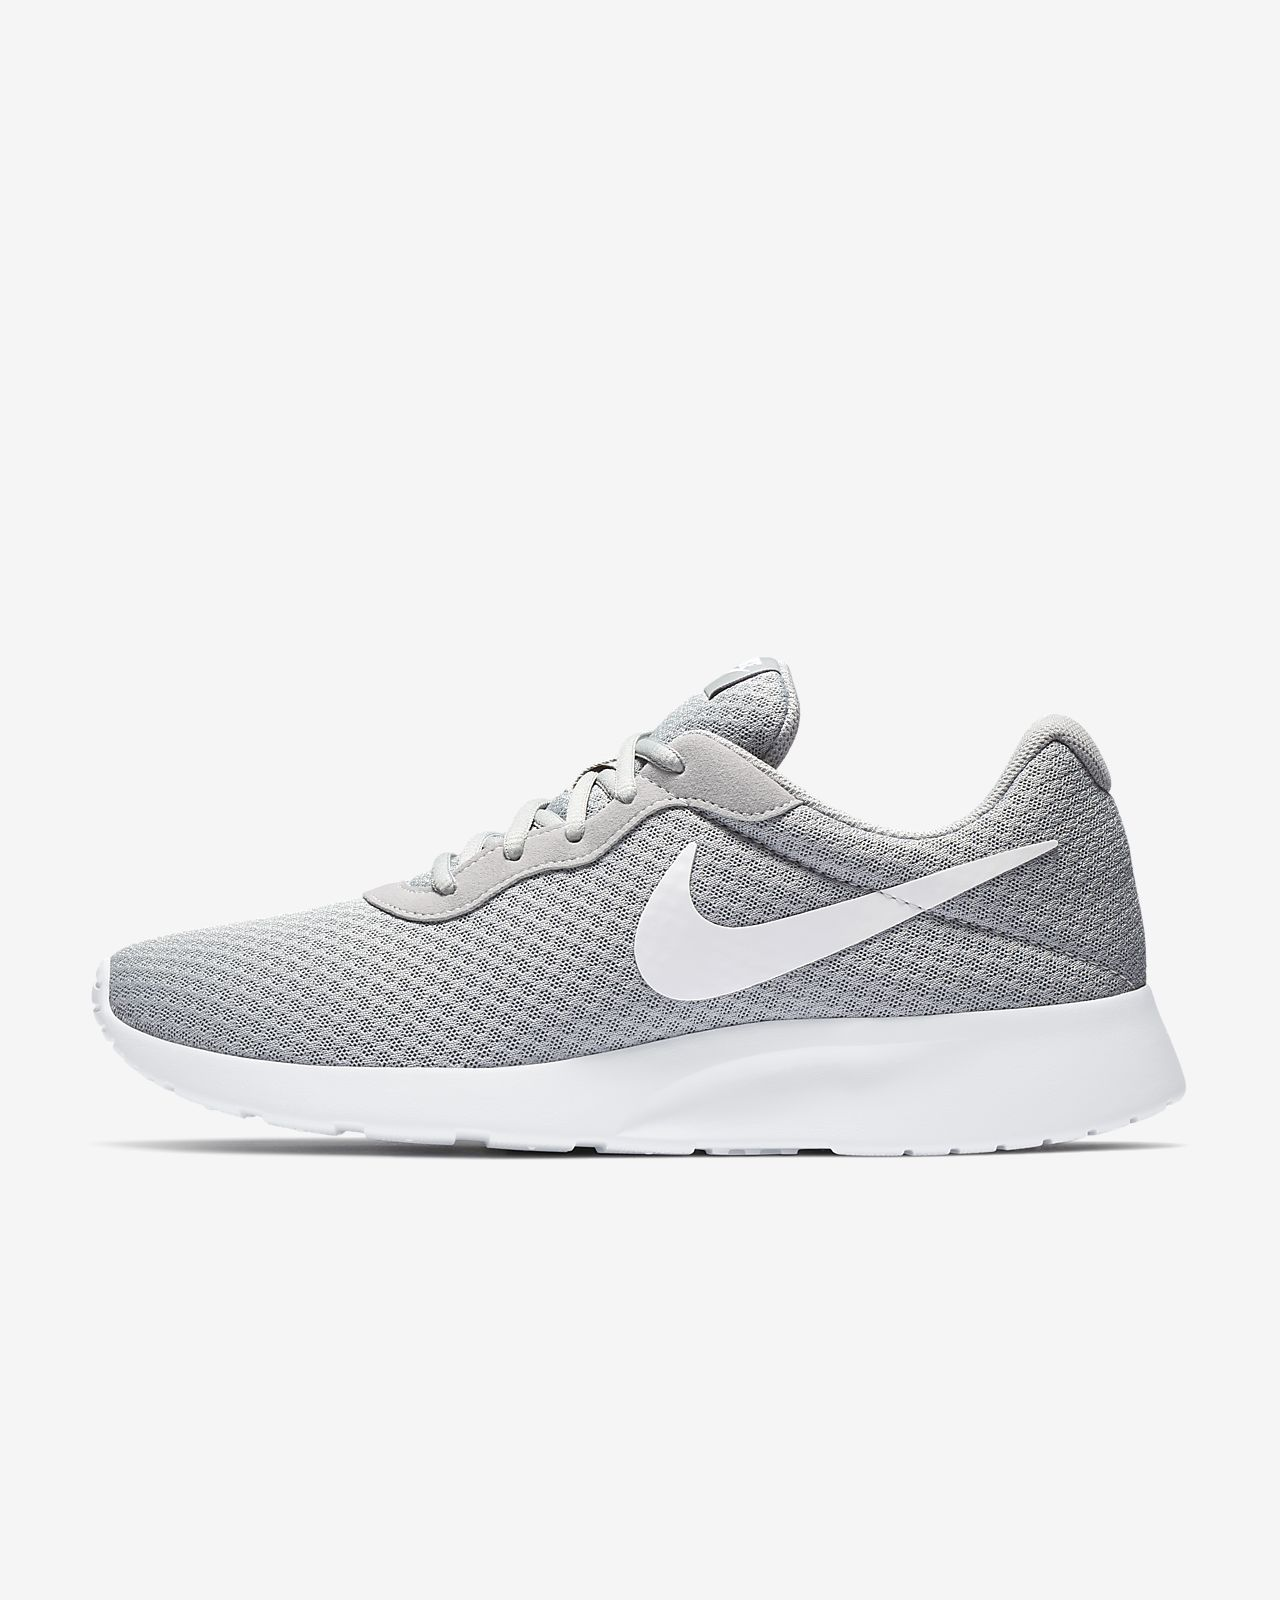 Nike Air Max Modern Flyknit men wolf grey white black at